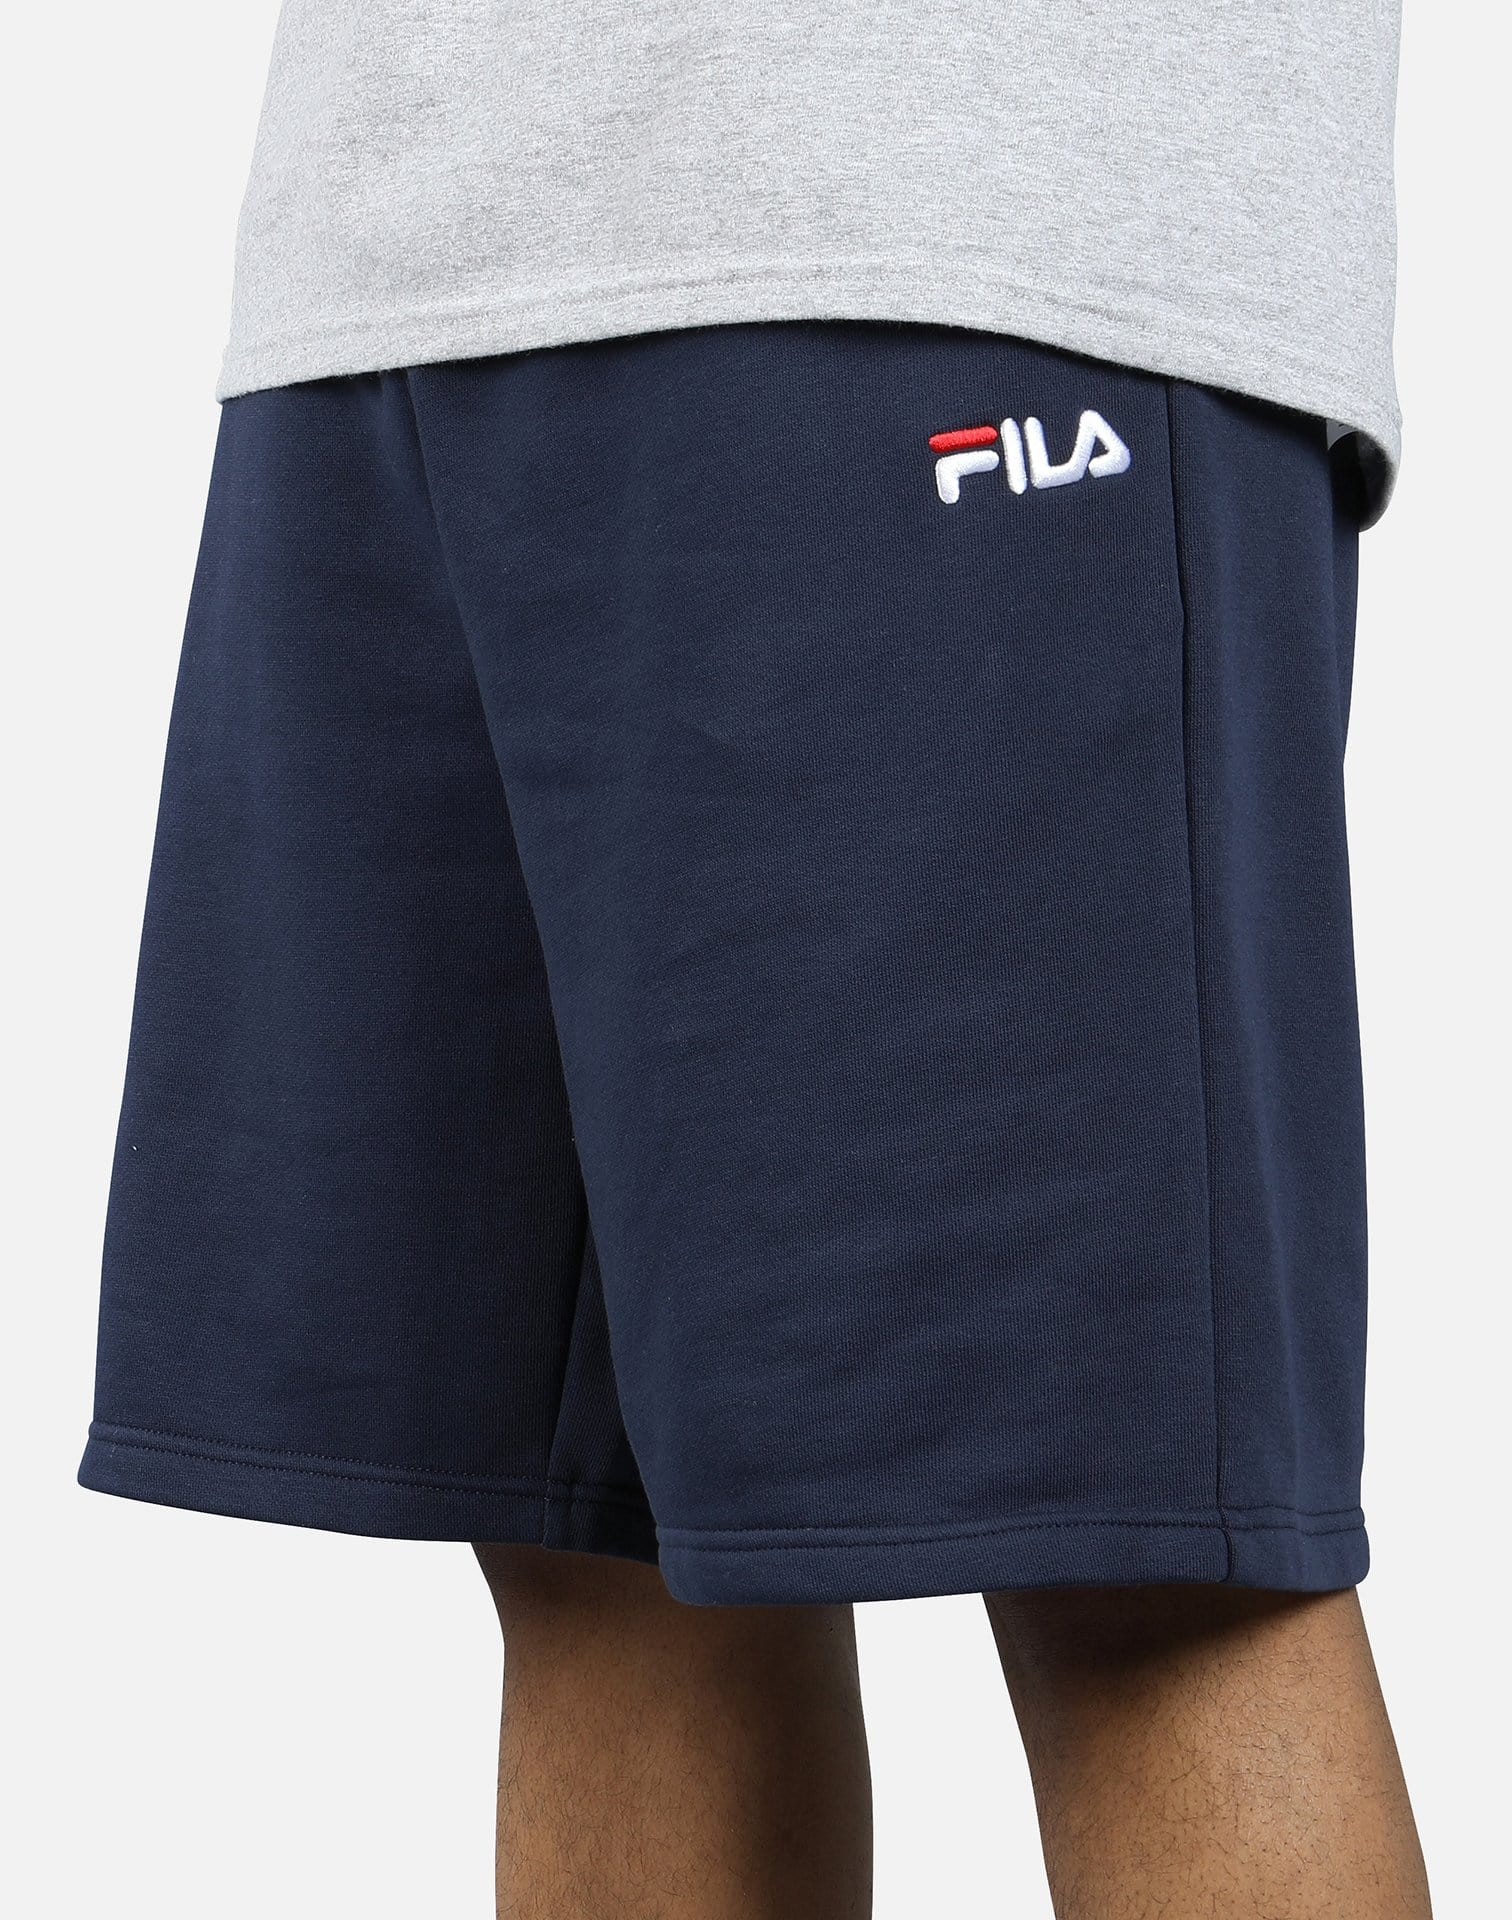 Fila Tanaro Fleece Shorts